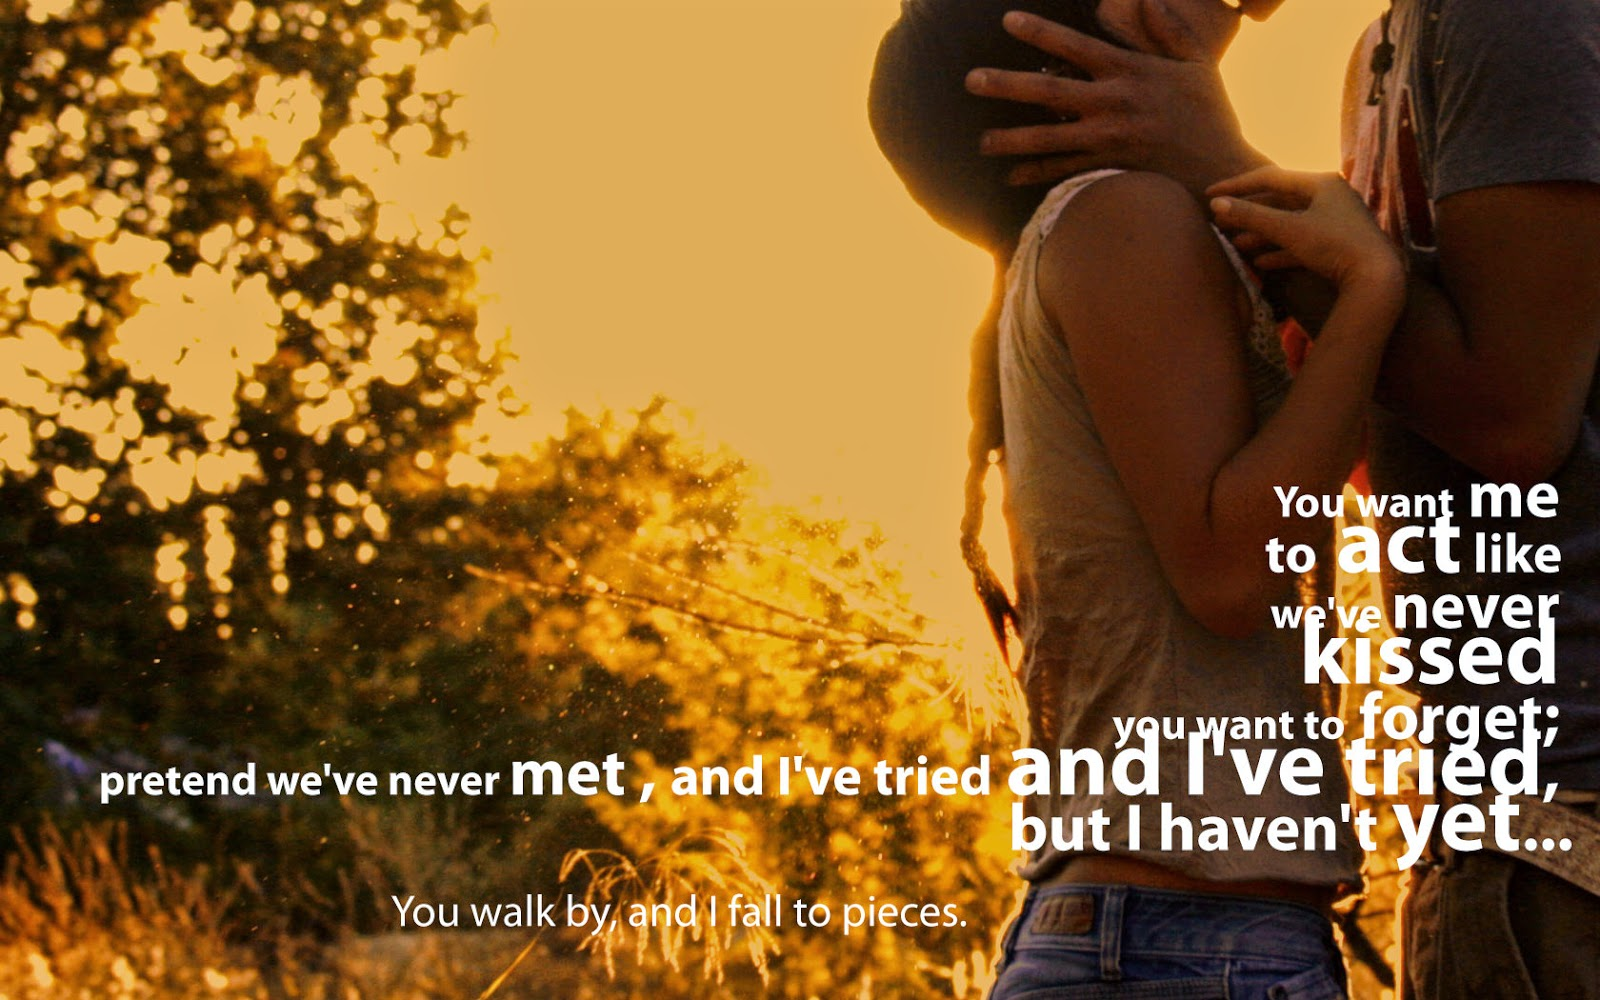 Beautiful Love Photography Image With Quote For